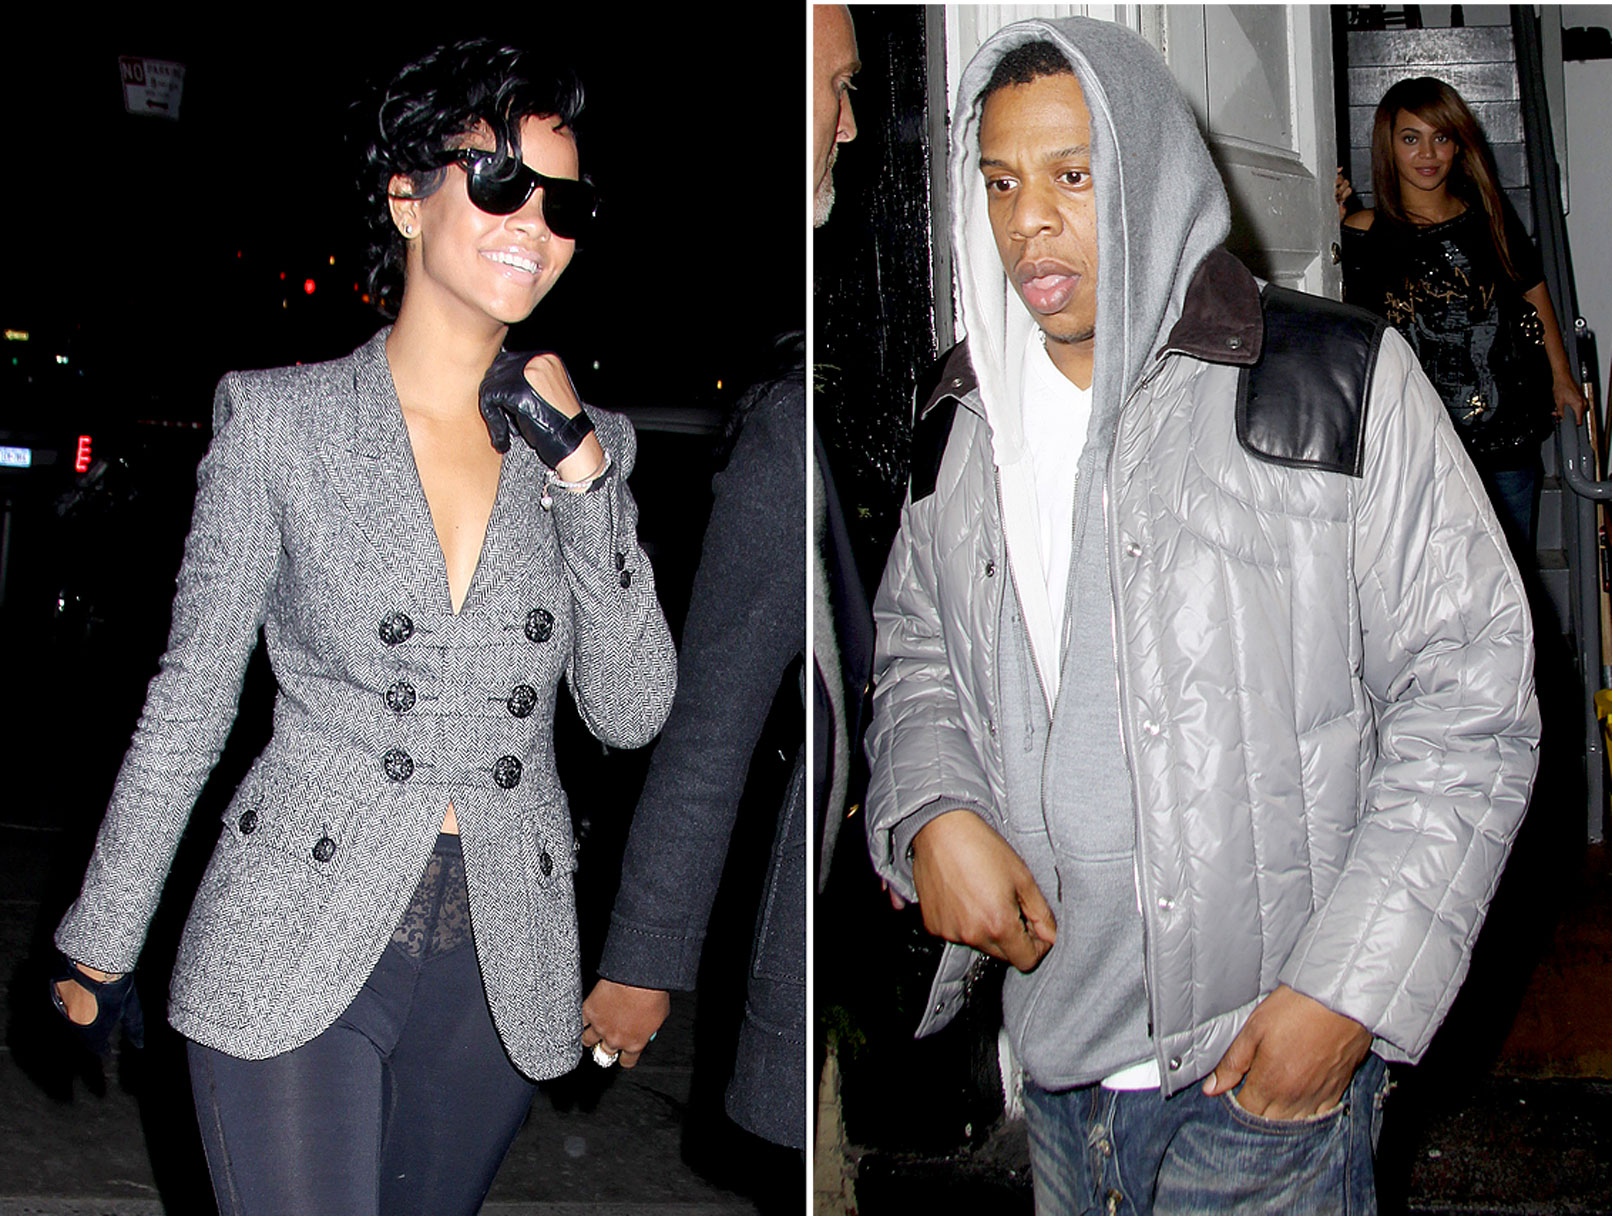 Rihanna's Belated Birthday with Mr. and Mrs. Jay-Z